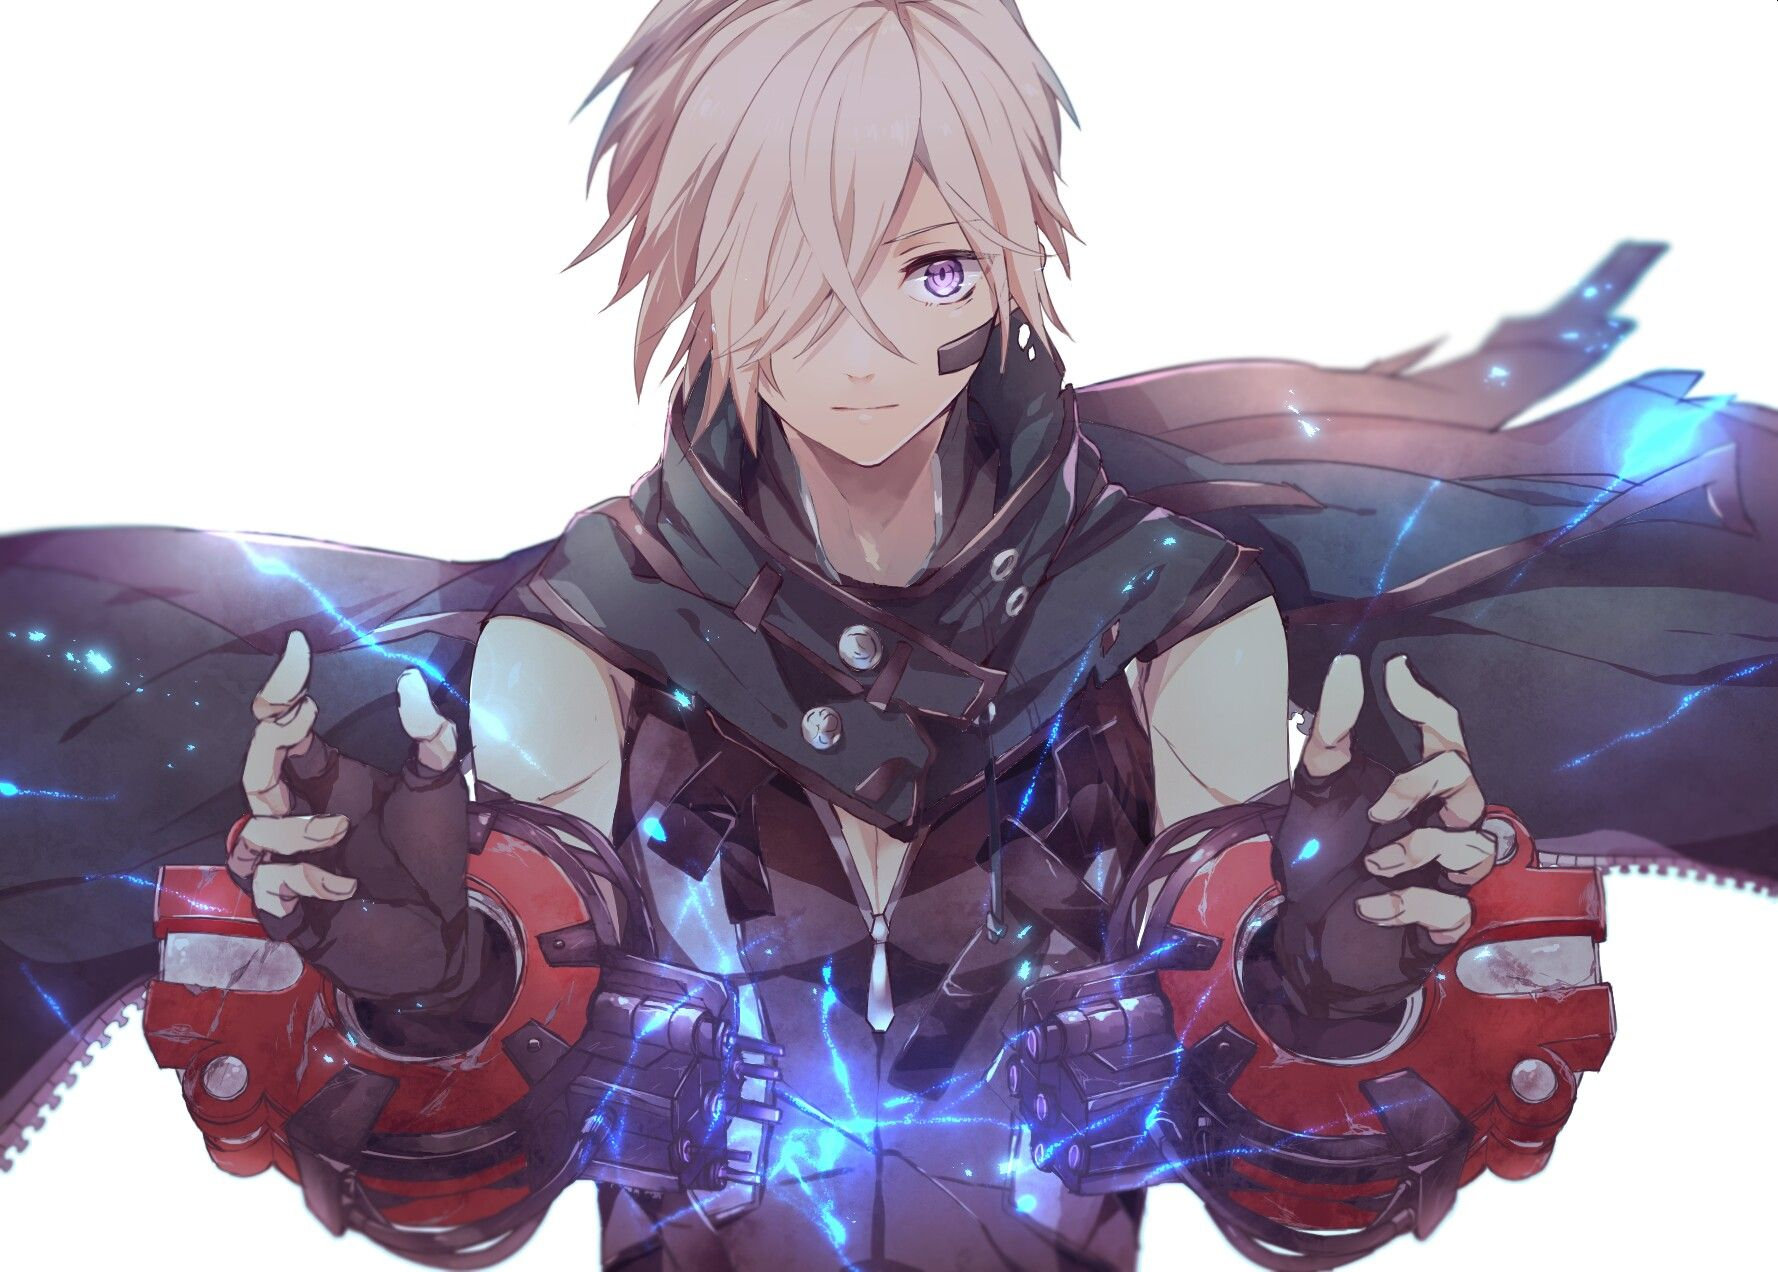 Cute Love Animation Wallpaper Protagonist God Eater 3 Agh I Want To Know The Damn